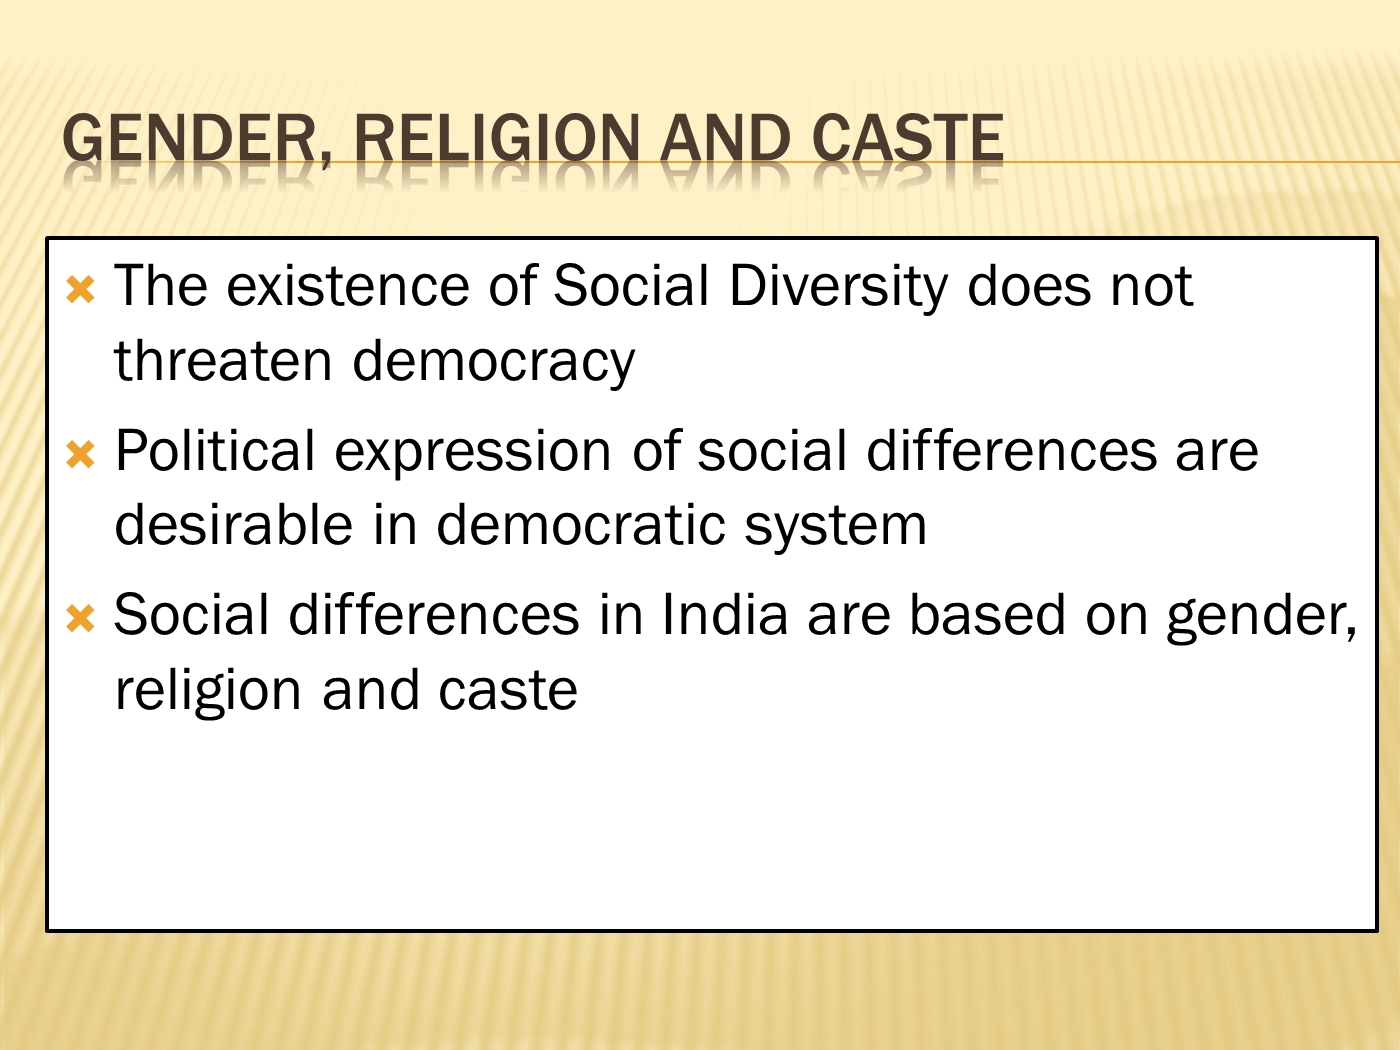 Classnotes Class 10 Notes Of Gender Religion And Caste